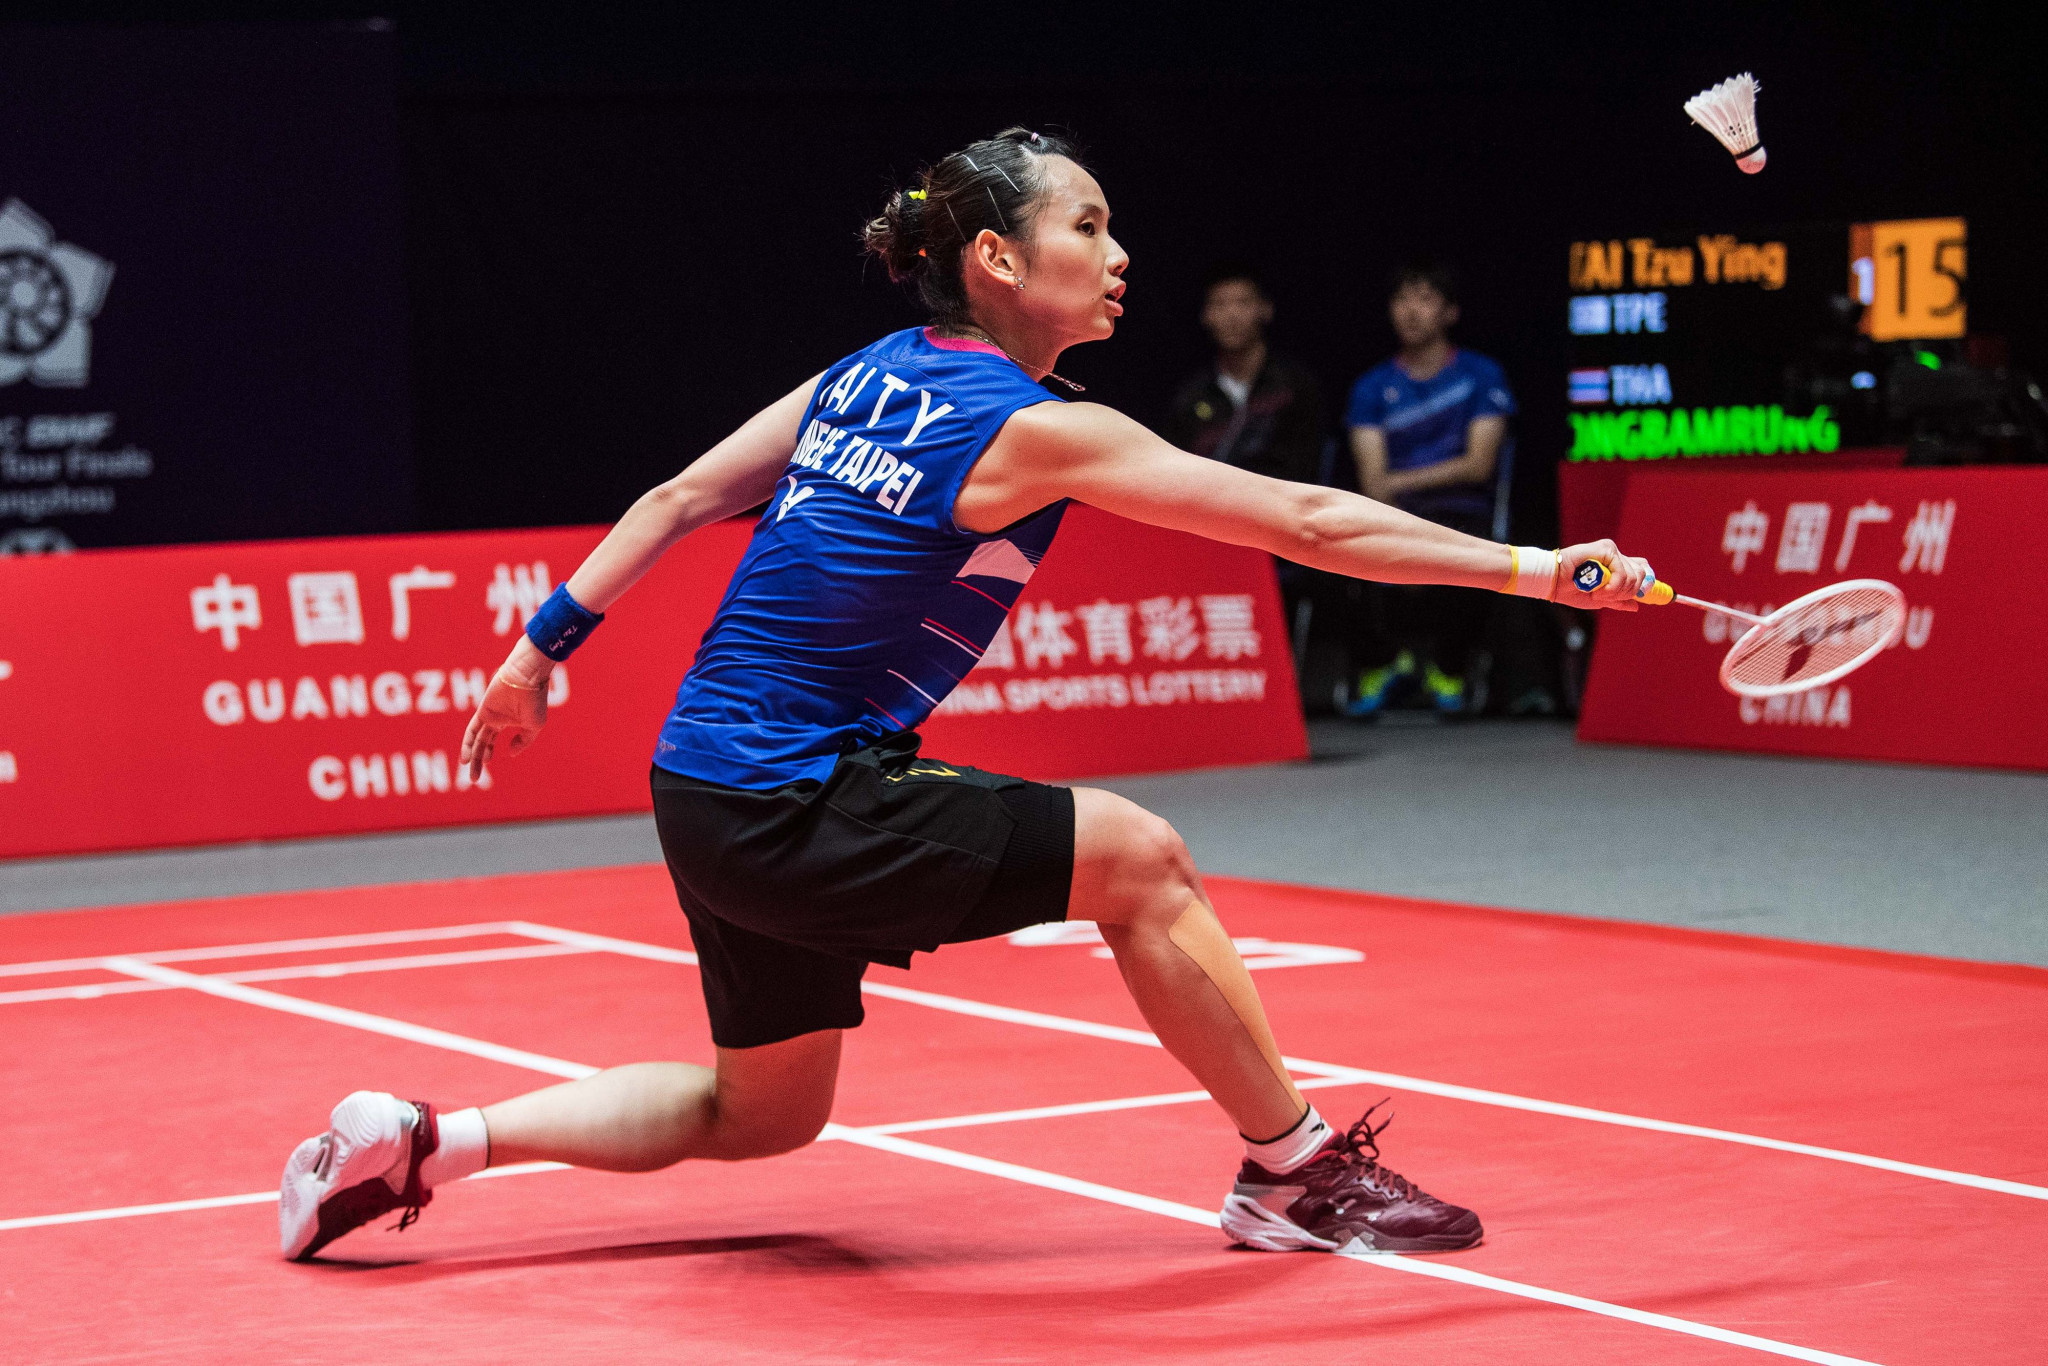 Women's world number one Tai Tzu Ying is also through to the semi-finals ©Getty Images